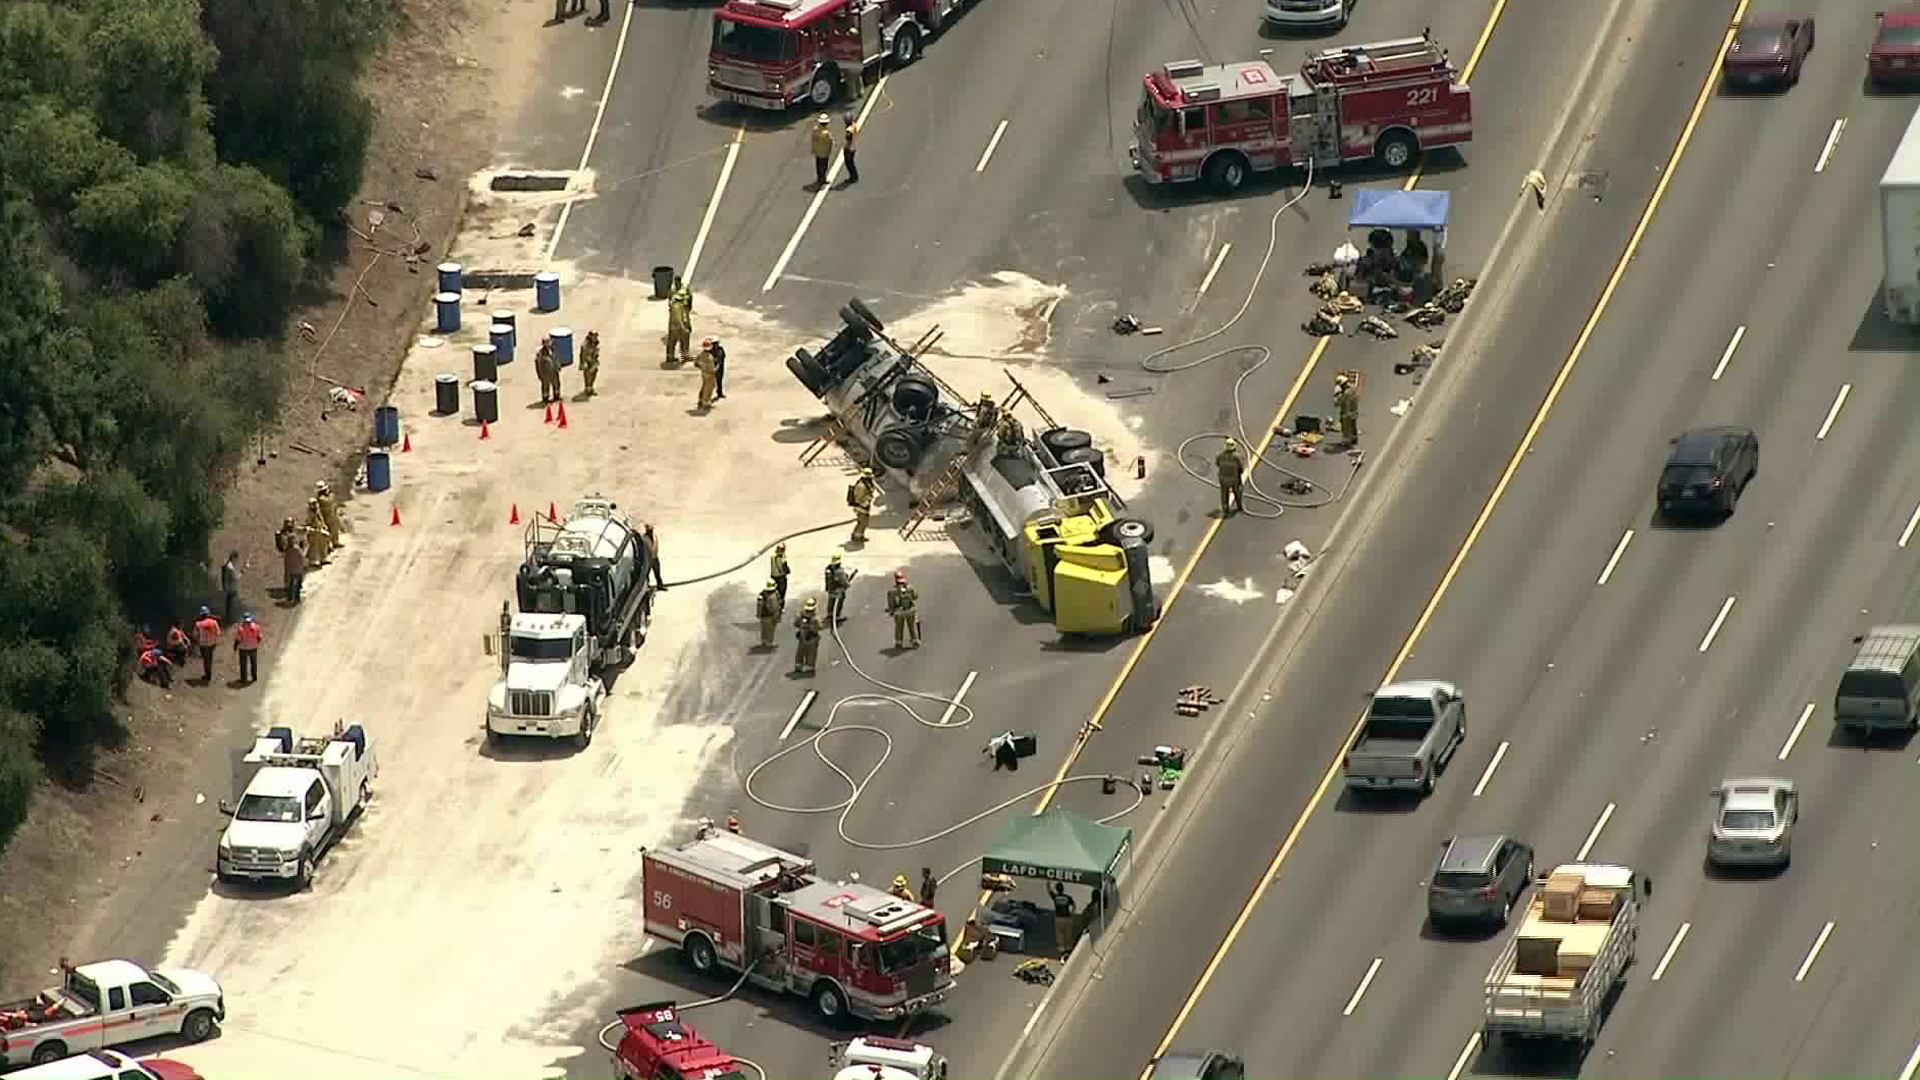 Crews clean up after a fuel tanker overturned on the 5 Freeway near Griffith Park on Aug. 7, 2019. (Credit: Sky5)